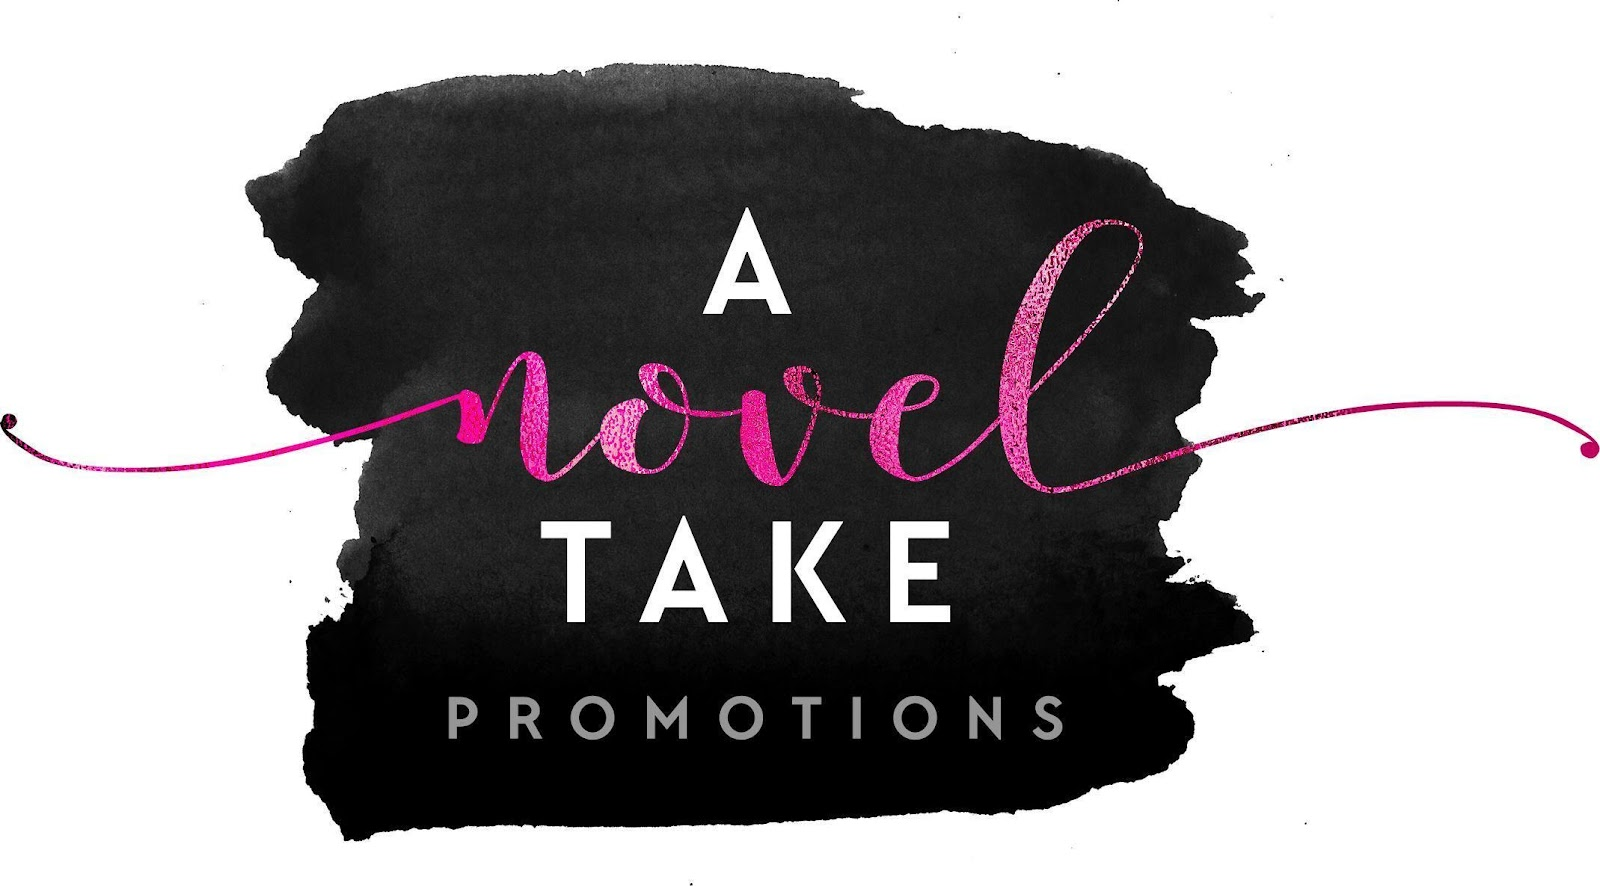 A-Novel-Take-Logo-Large.jpg